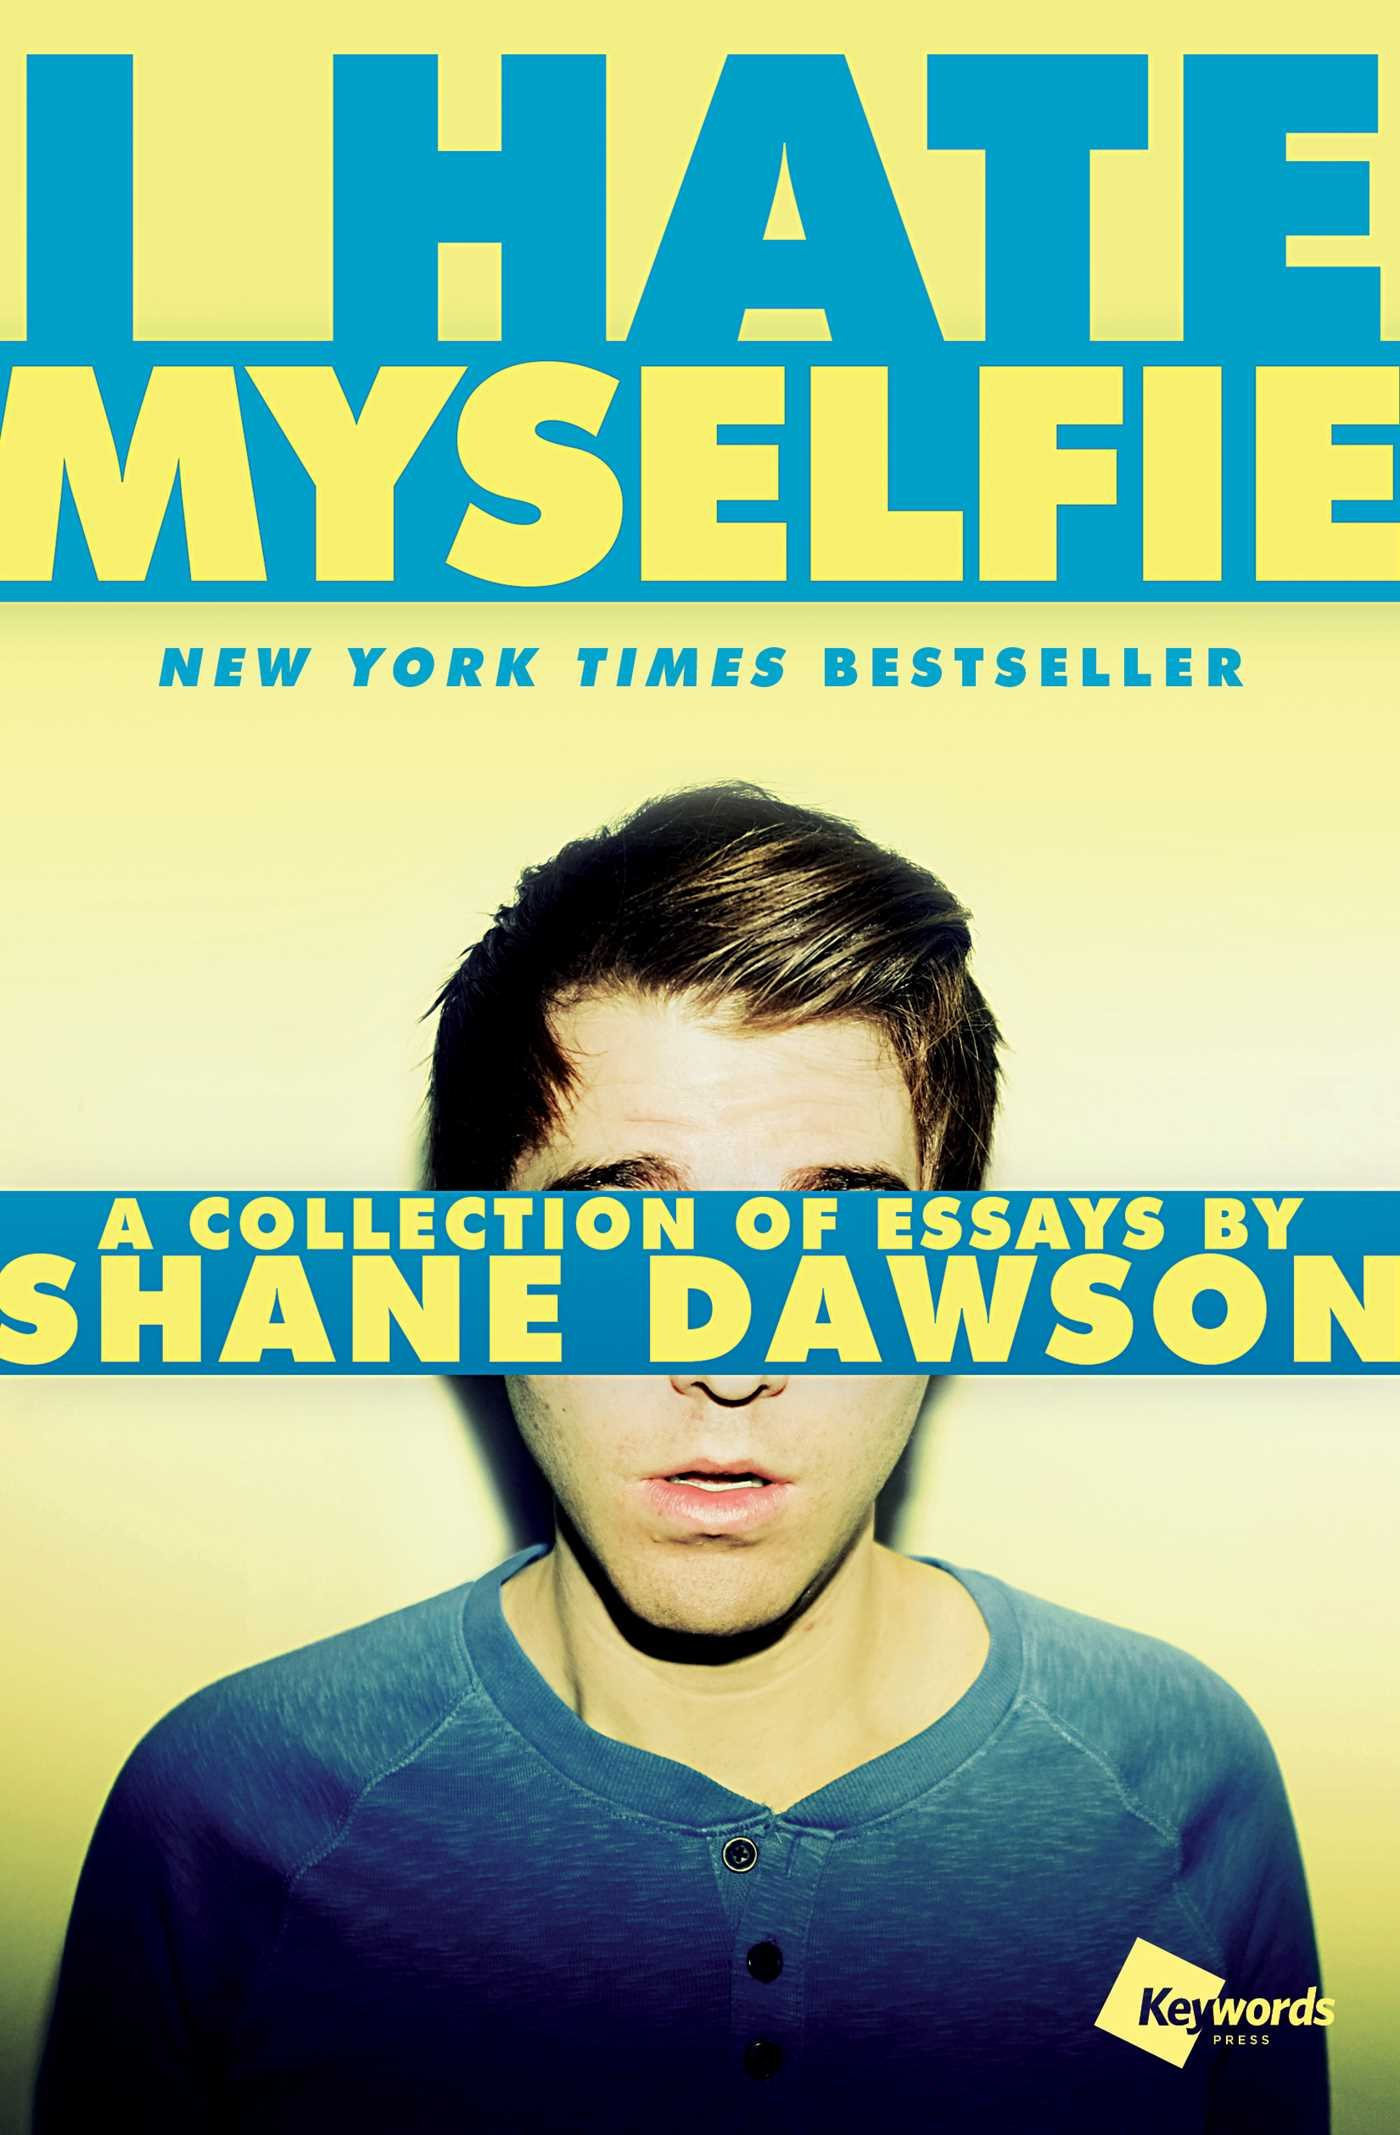 i hate myselfie a collection of essays by shane dawson amazon co i hate myselfie a collection of essays by shane dawson amazon co uk shane dawson 0001476791546 books